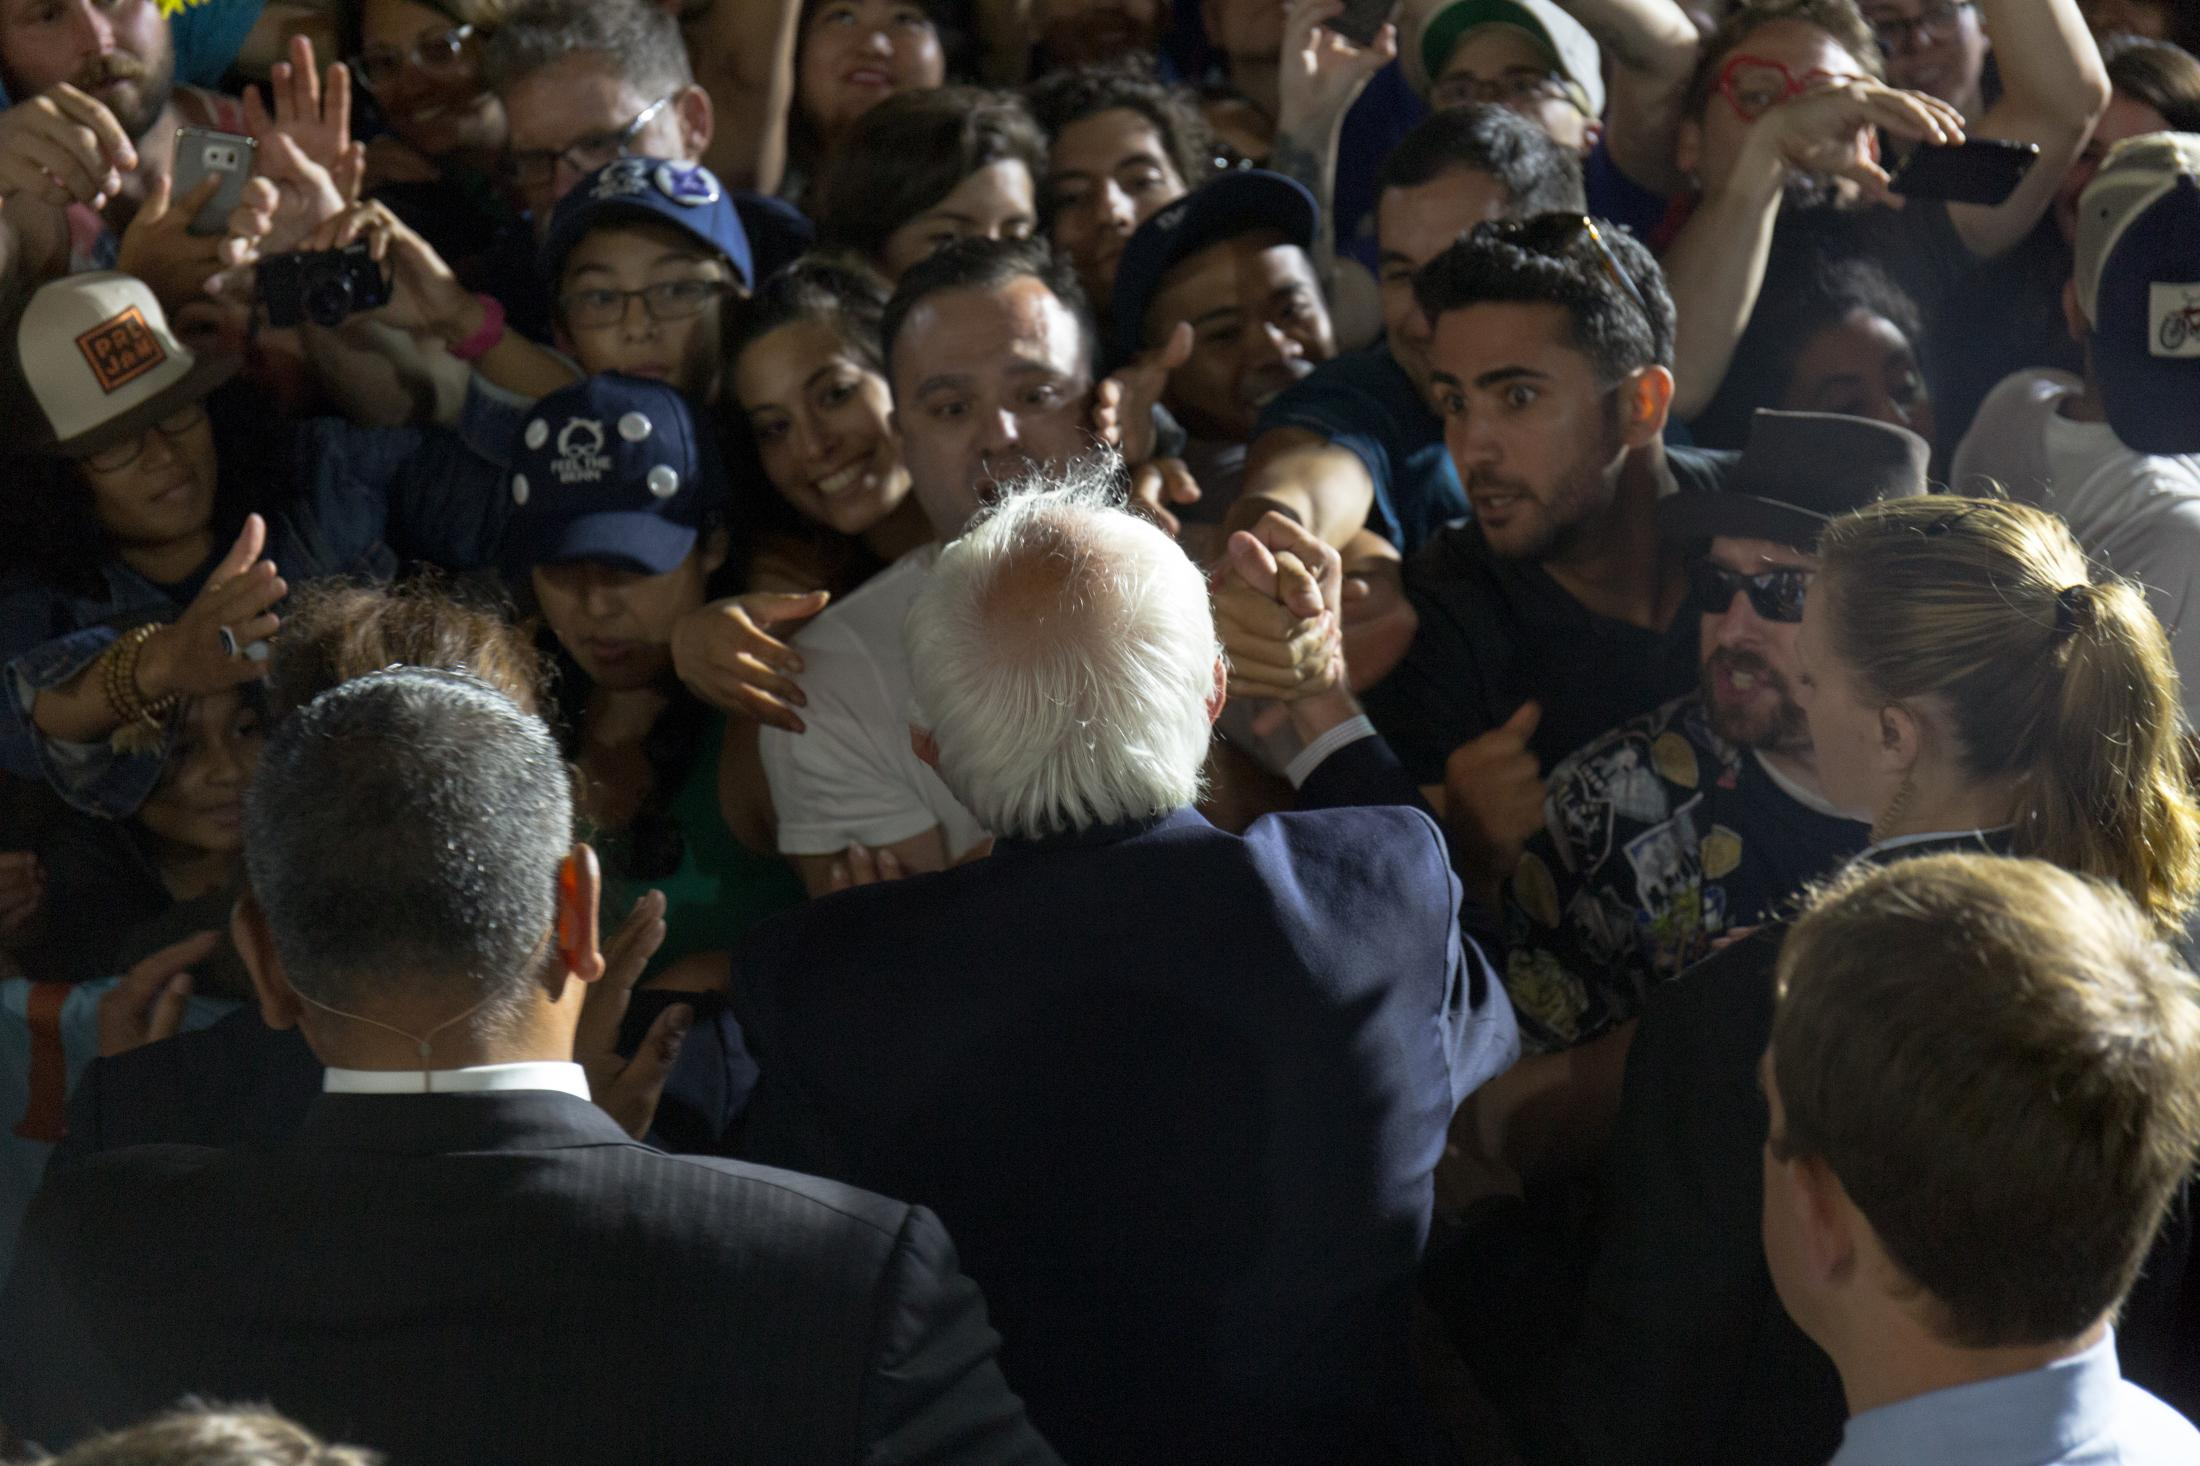 Vermont Senator Bernie Sanders shakes hands as he walks along the crowd of supporters after his speech at the Los Angeles Memorial Coliseum on June 4, 2016.